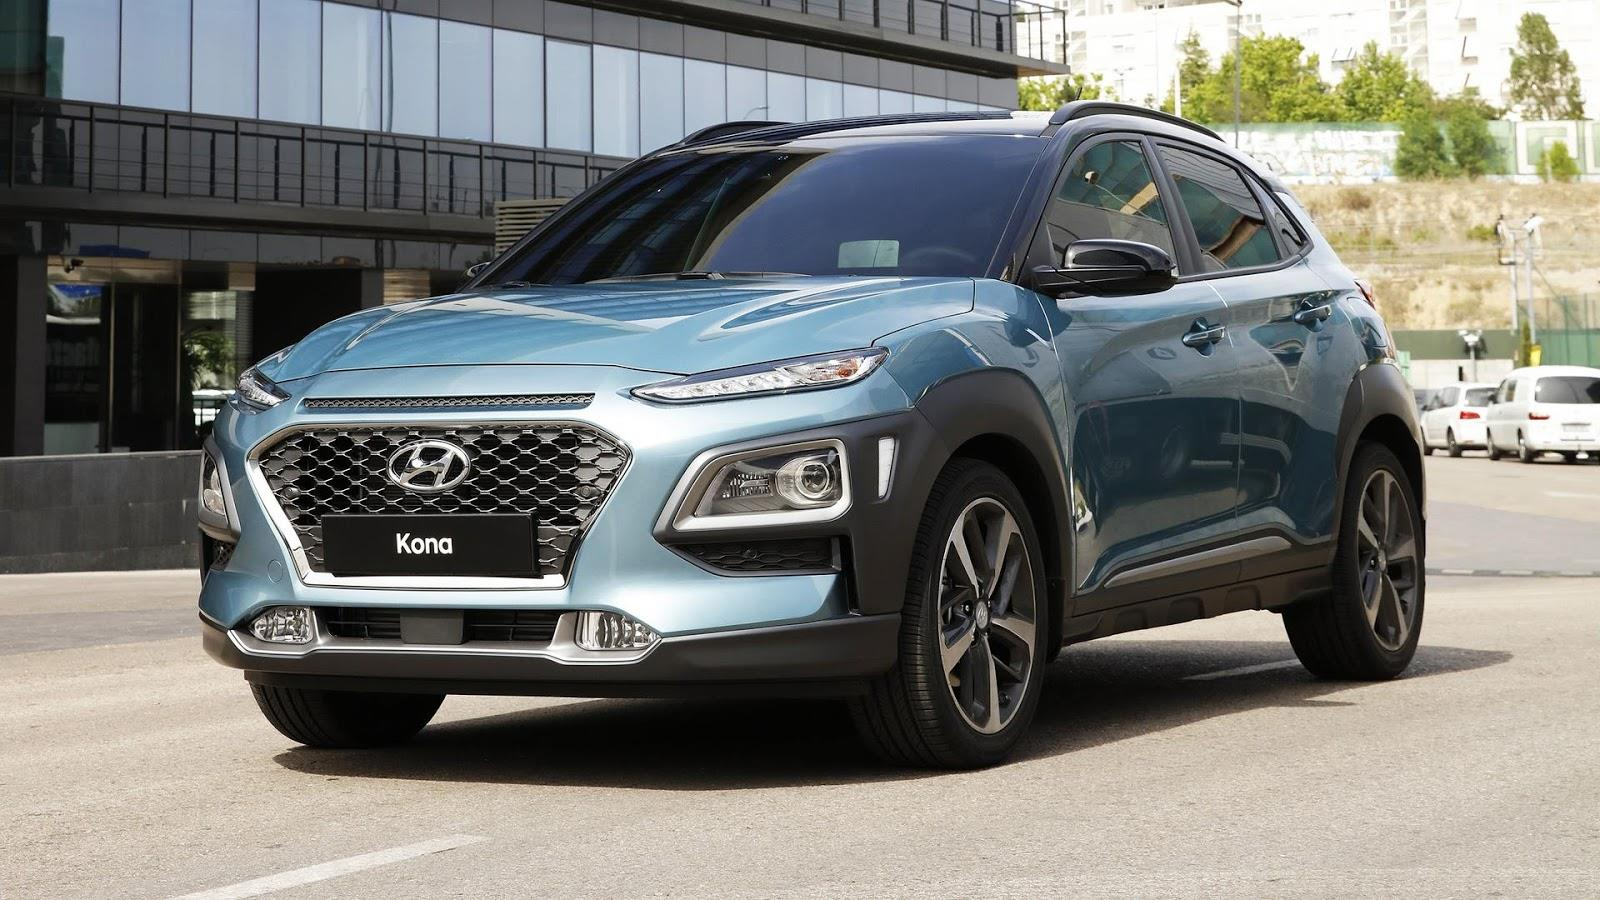 New Hyundai Kona revealed